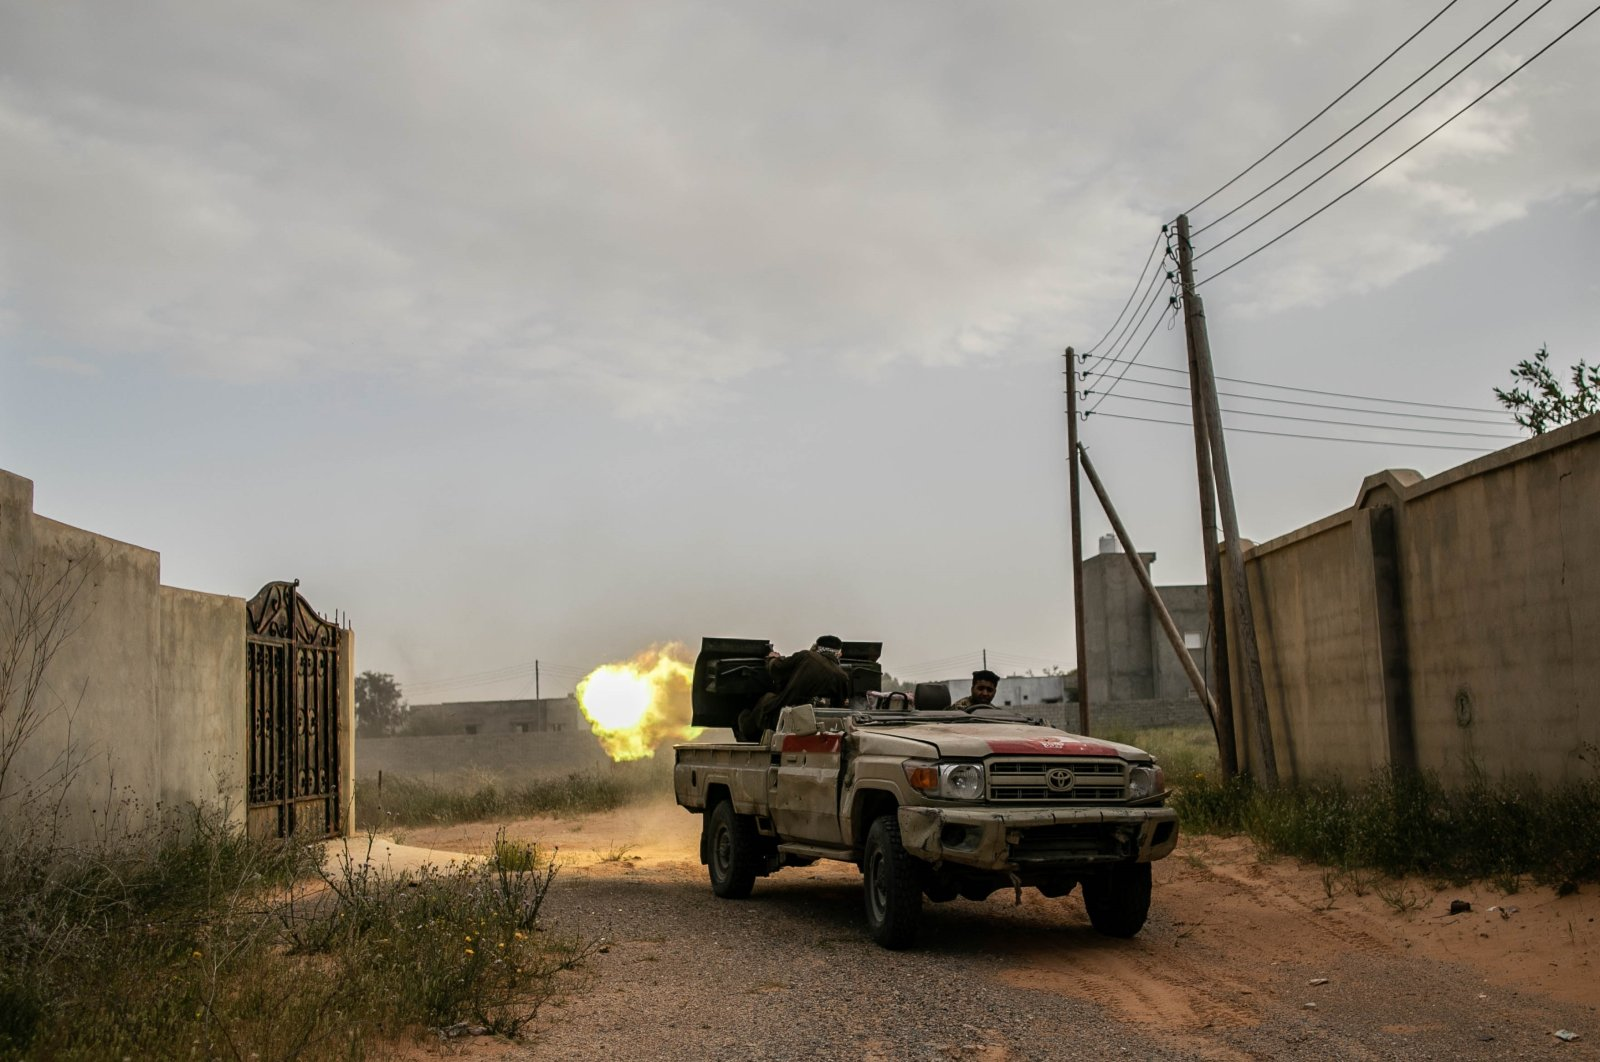 The internationally recognized Government of National Accord (GNA) in Libya last week launched Operation Peace Storm to stop continuous attacks of warlard Gen. Haftar in Tripoli, Saturday, March 28, 2020 (AA Photo)